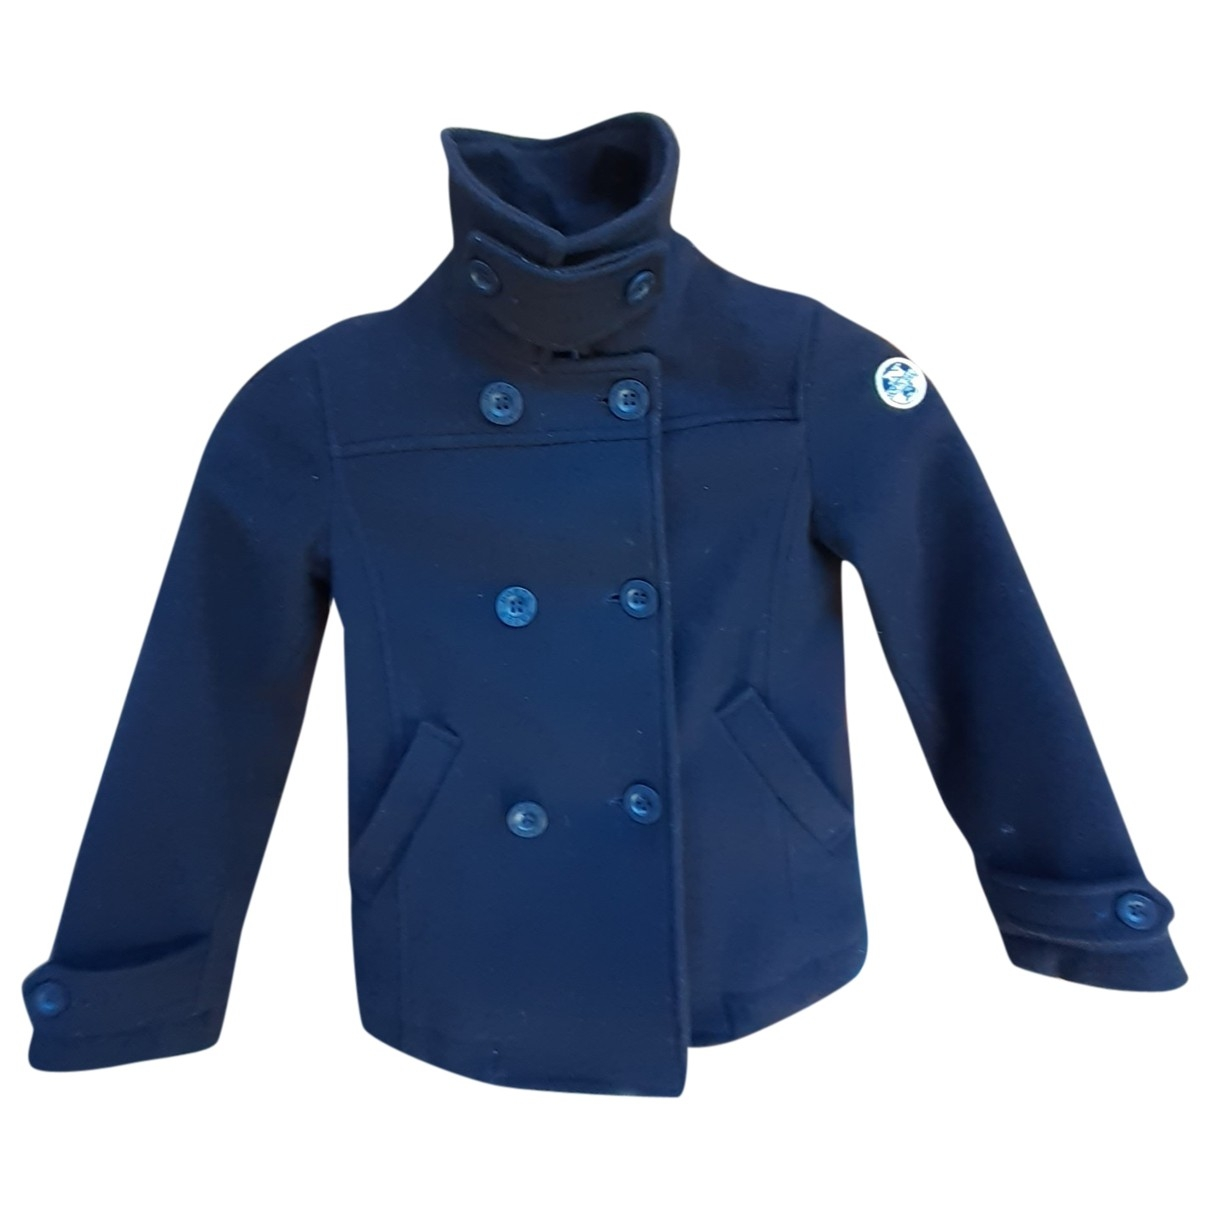 The North Face \N Blue Wool jacket & coat for Kids 6 years - up to 114cm FR